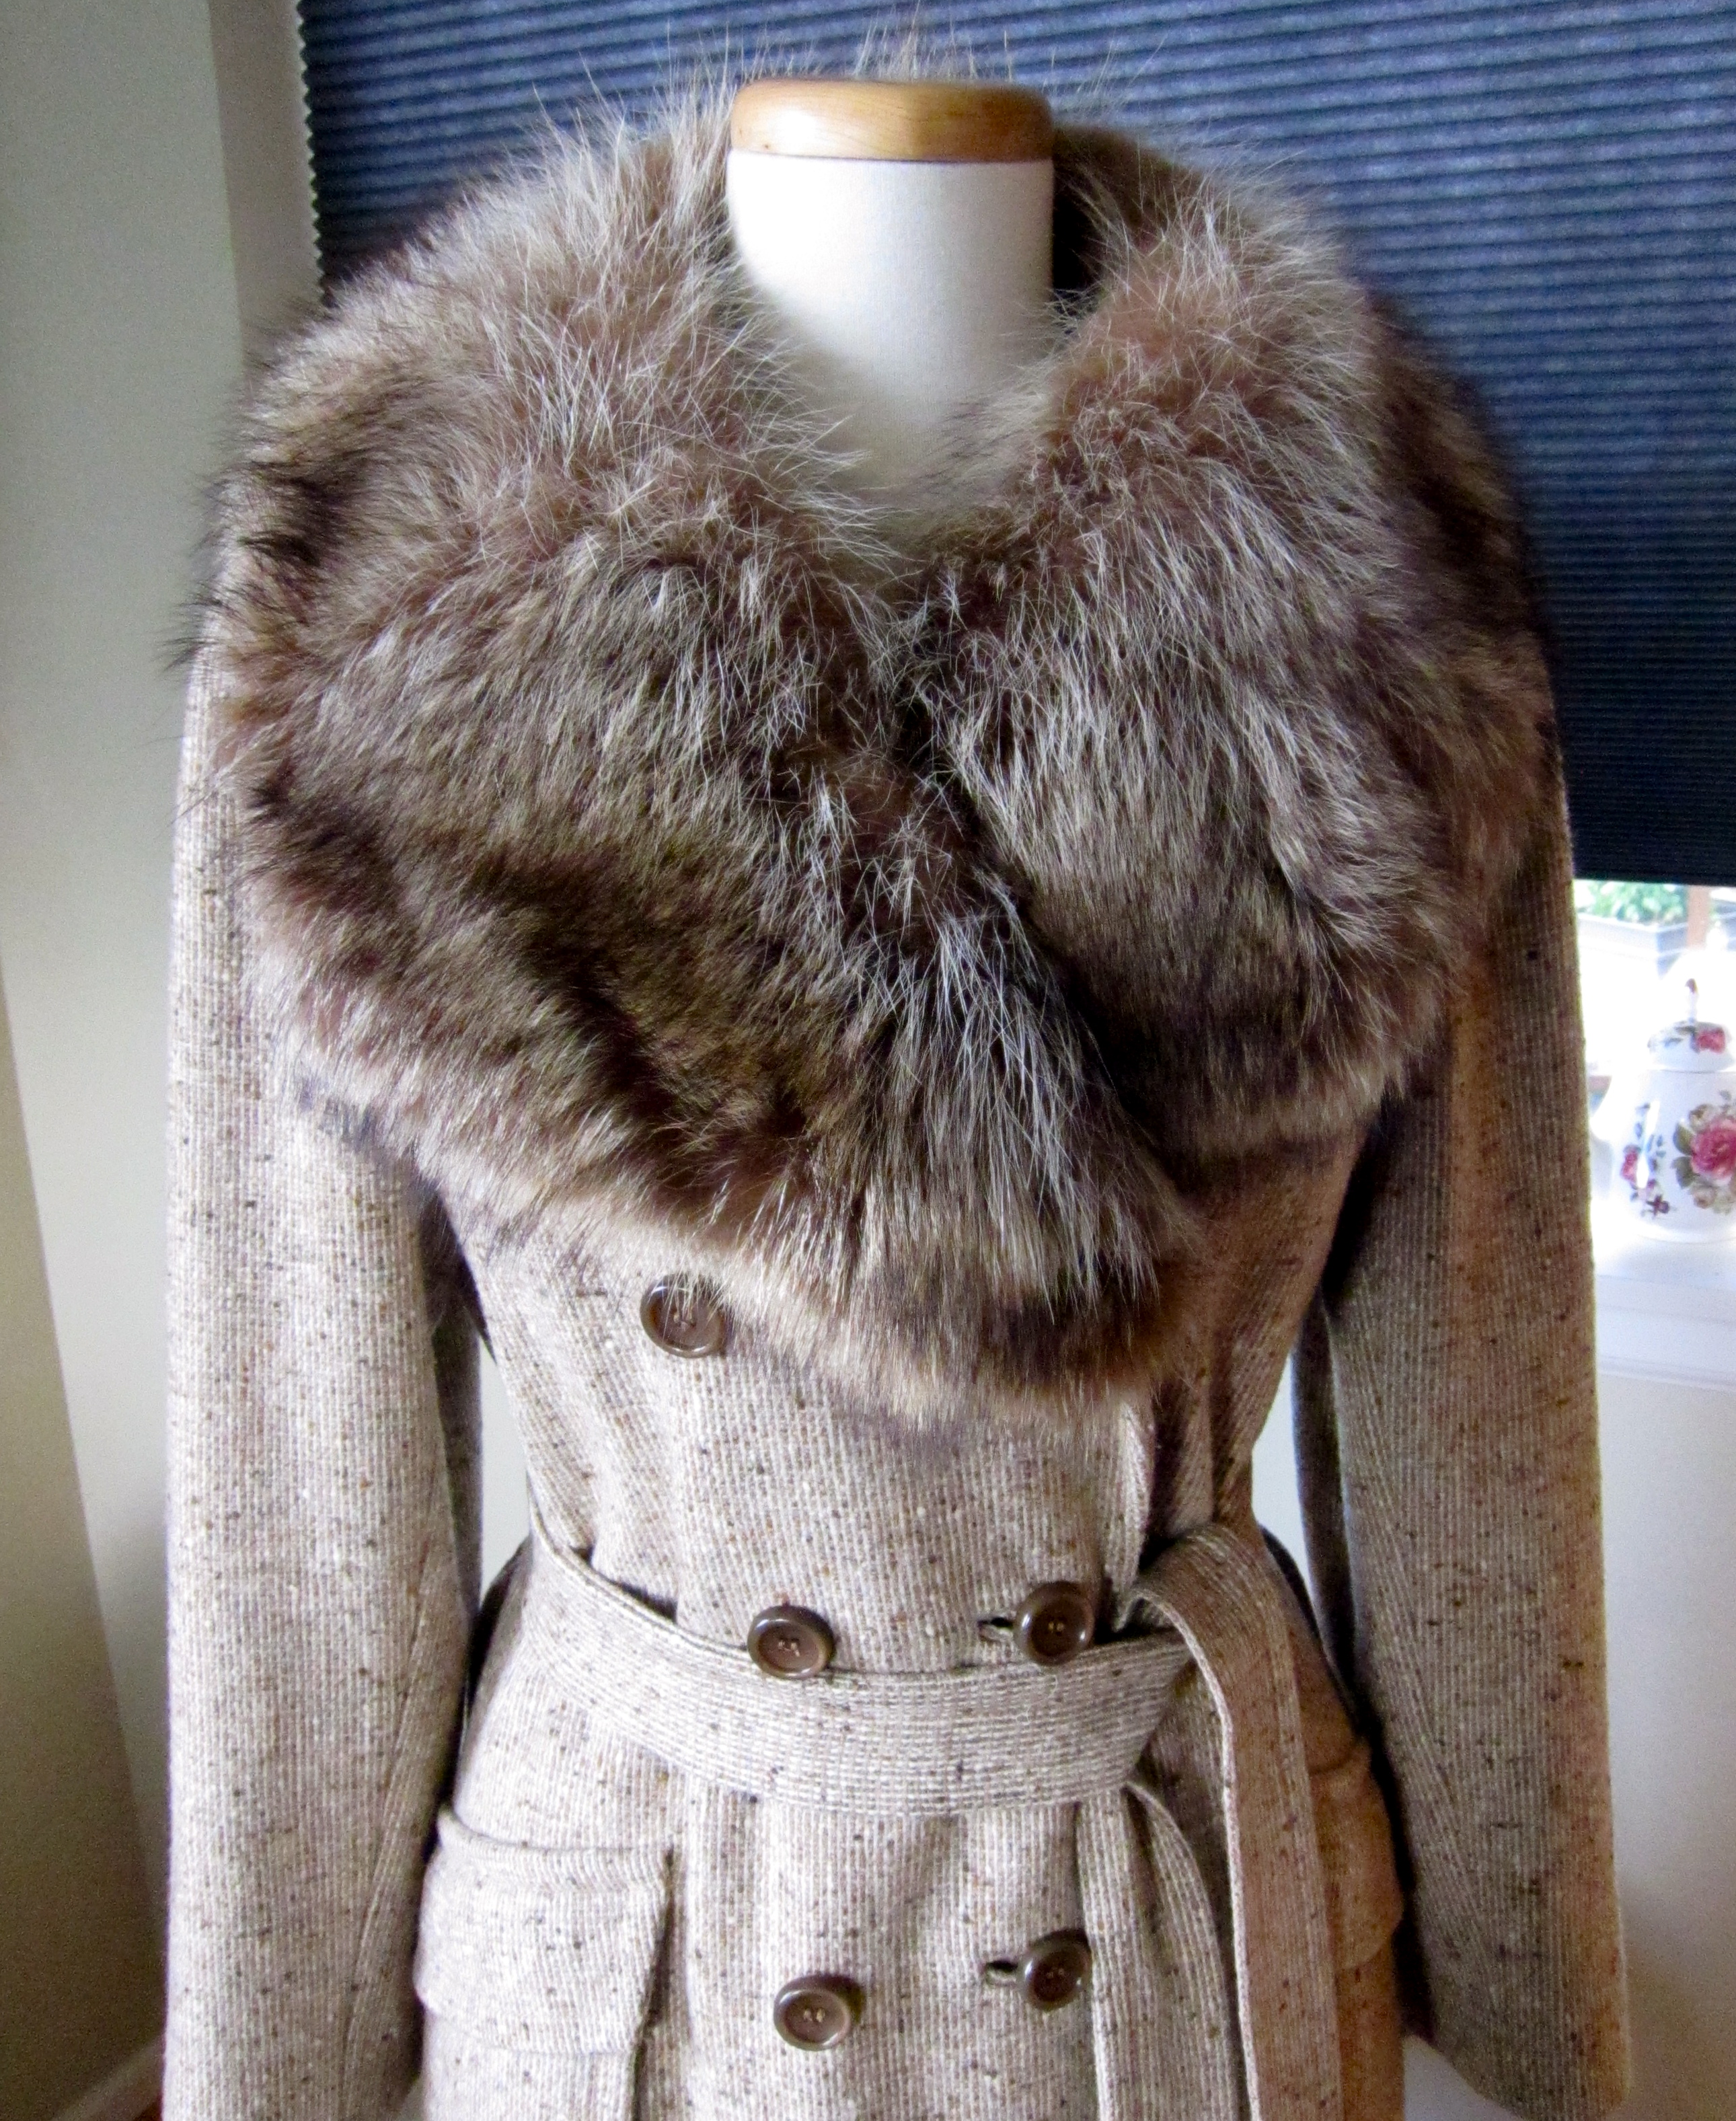 with-kerala-vintage-coat-with-fur-collar-teen-anal-hardcore